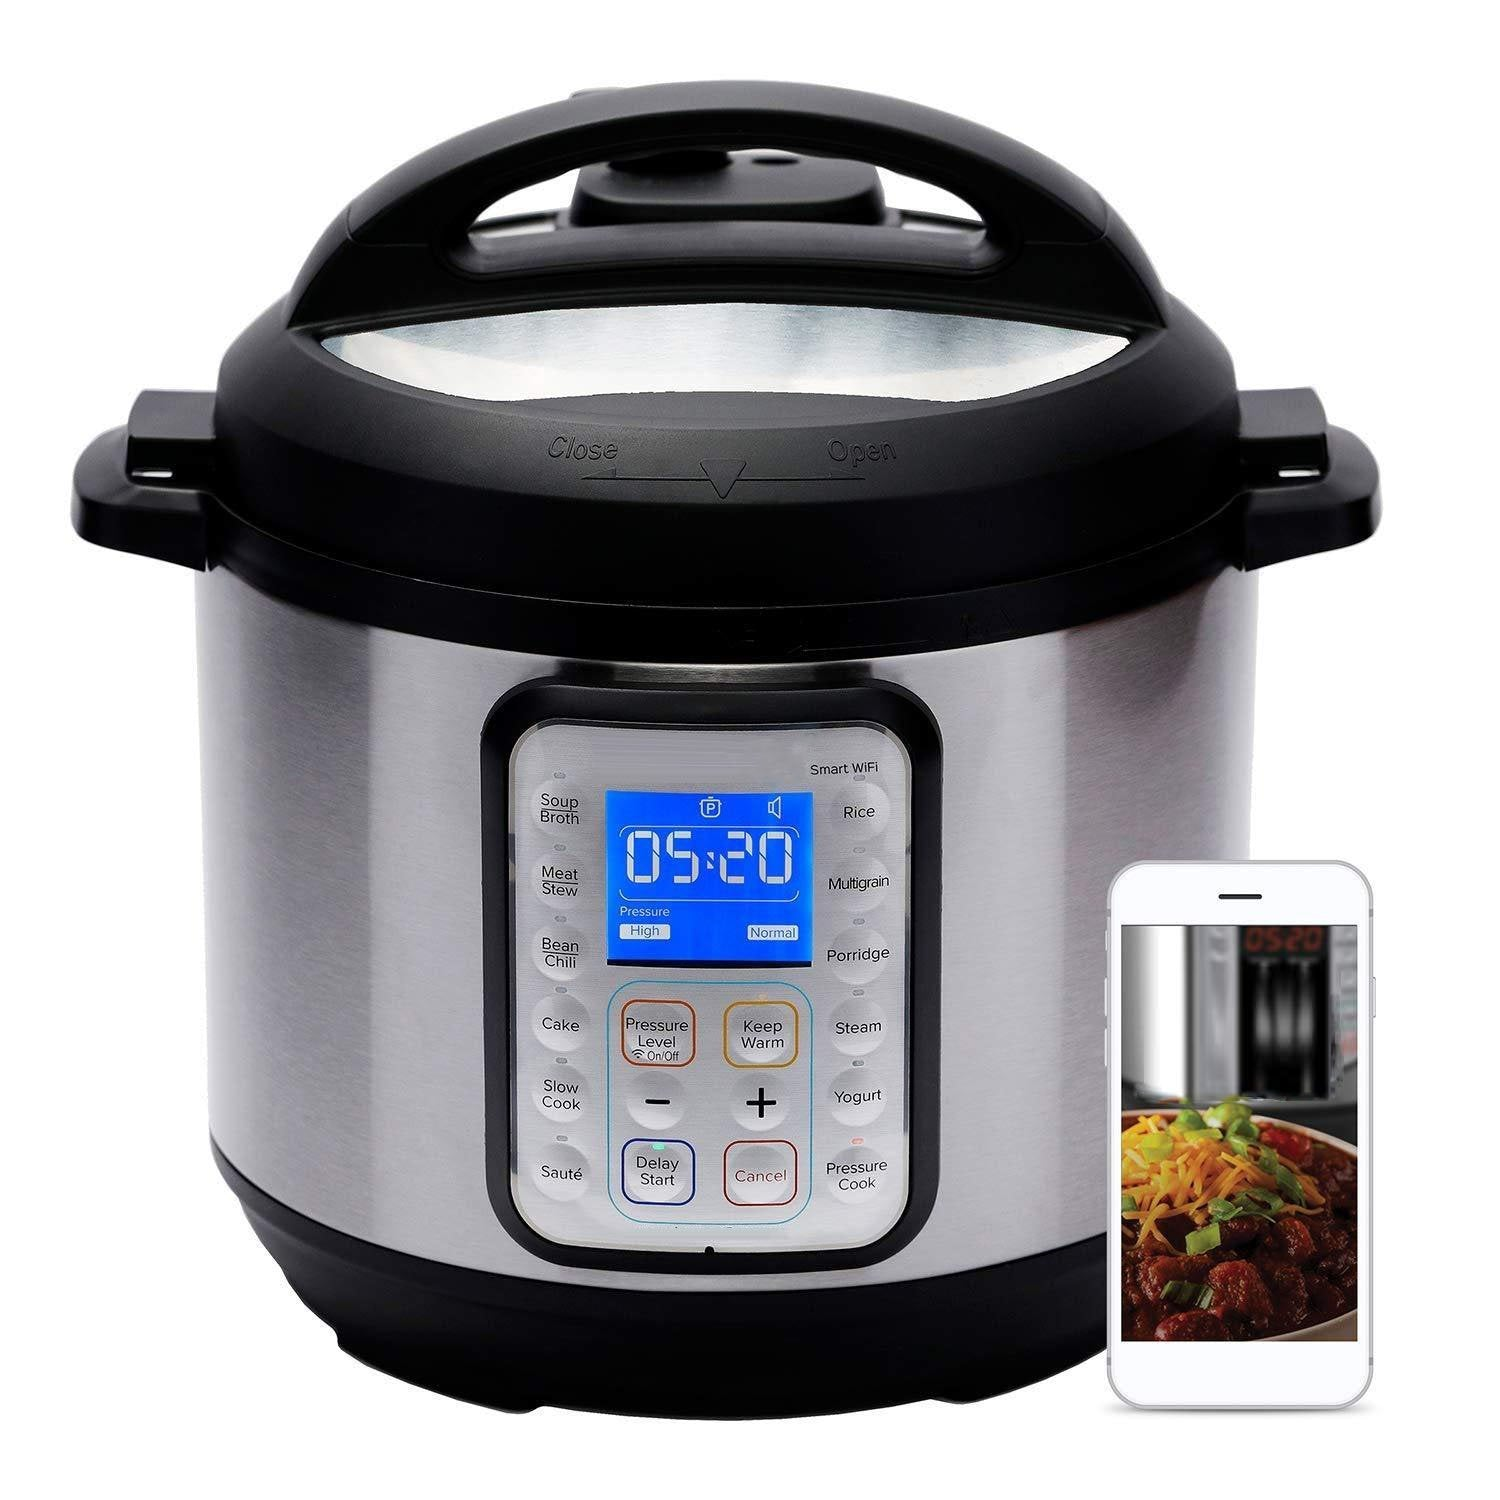 Smart WiFi 6 Quart Electric Pressure Cooker,Silver